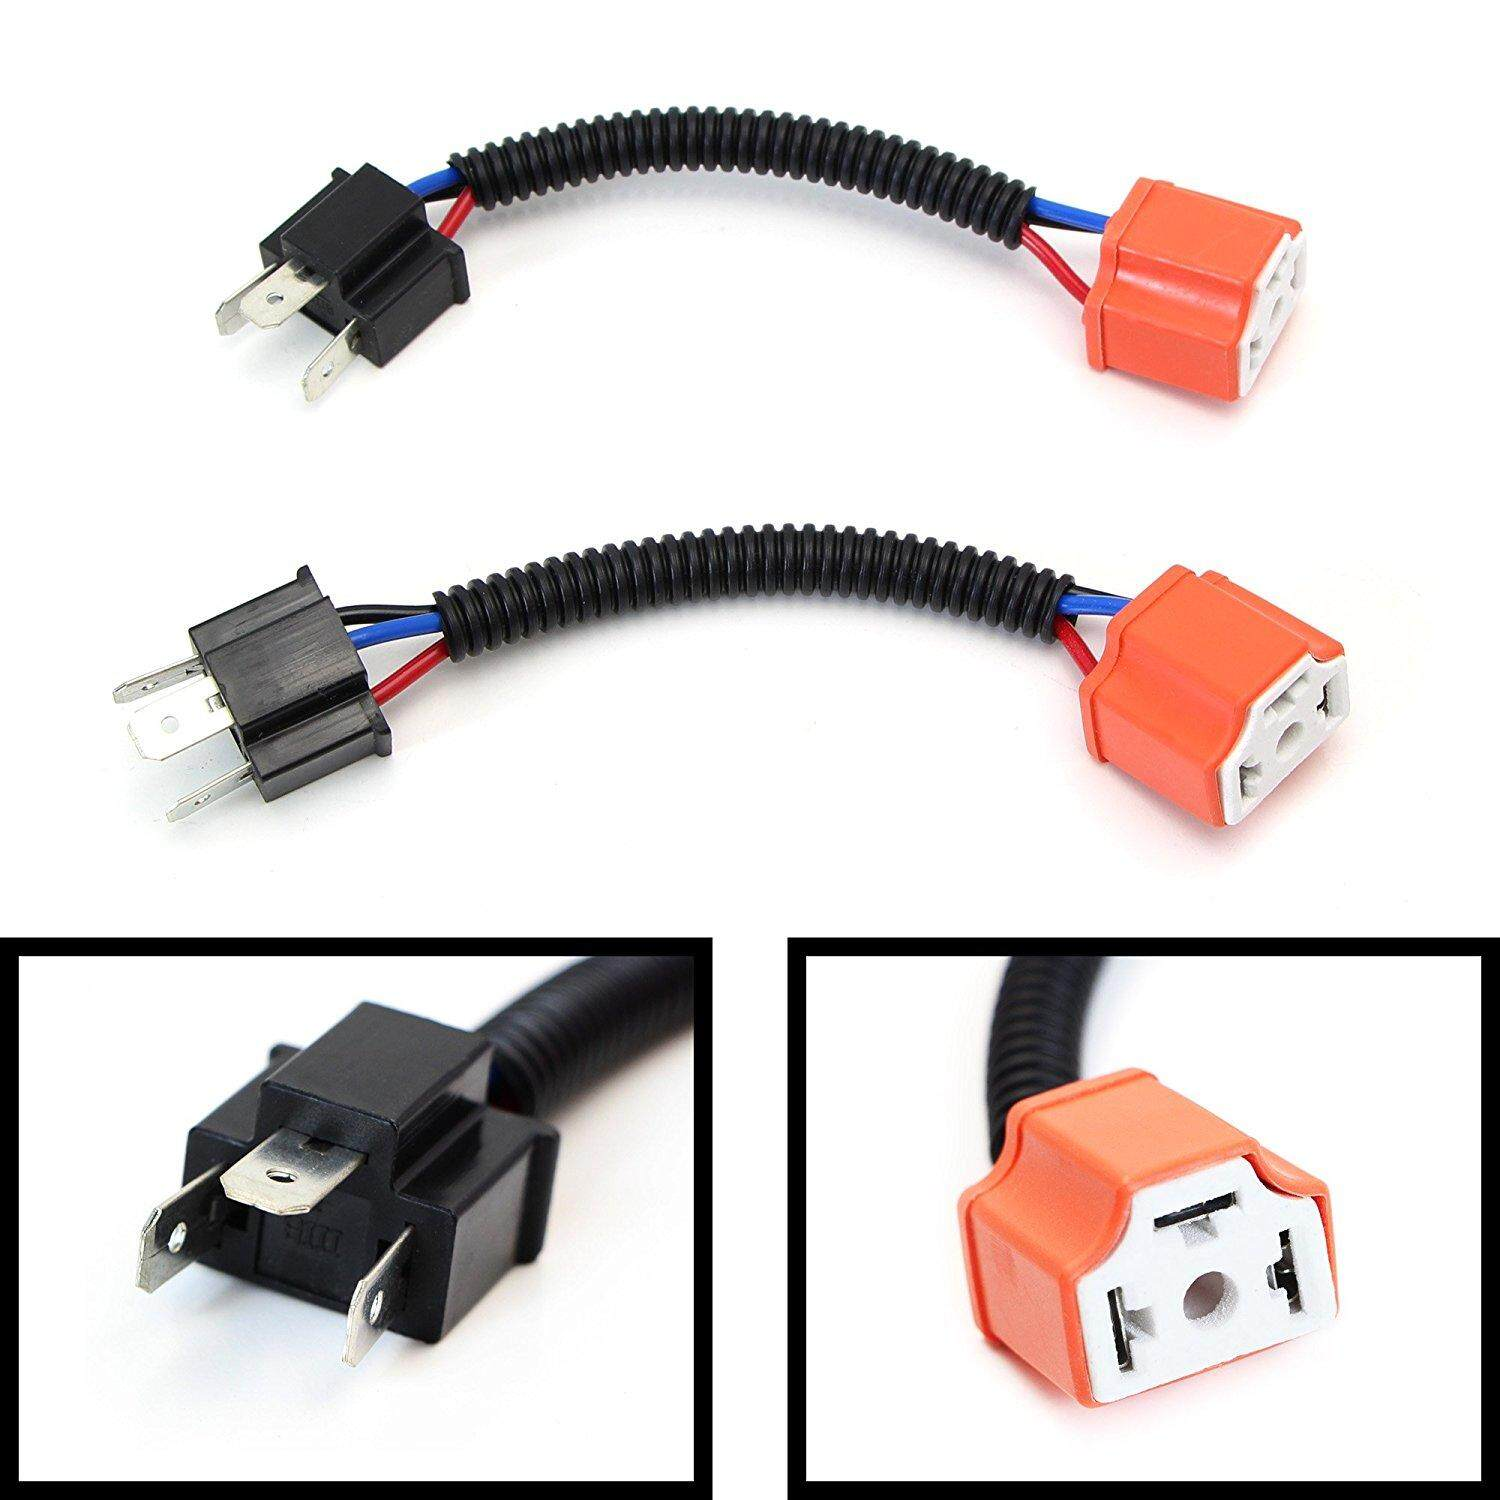 hight resolution of product details of h4 high quality ceramic wiring harness sockets car lamp adapter cable specification h4 ceramic head adapter cable package 2pcs intl